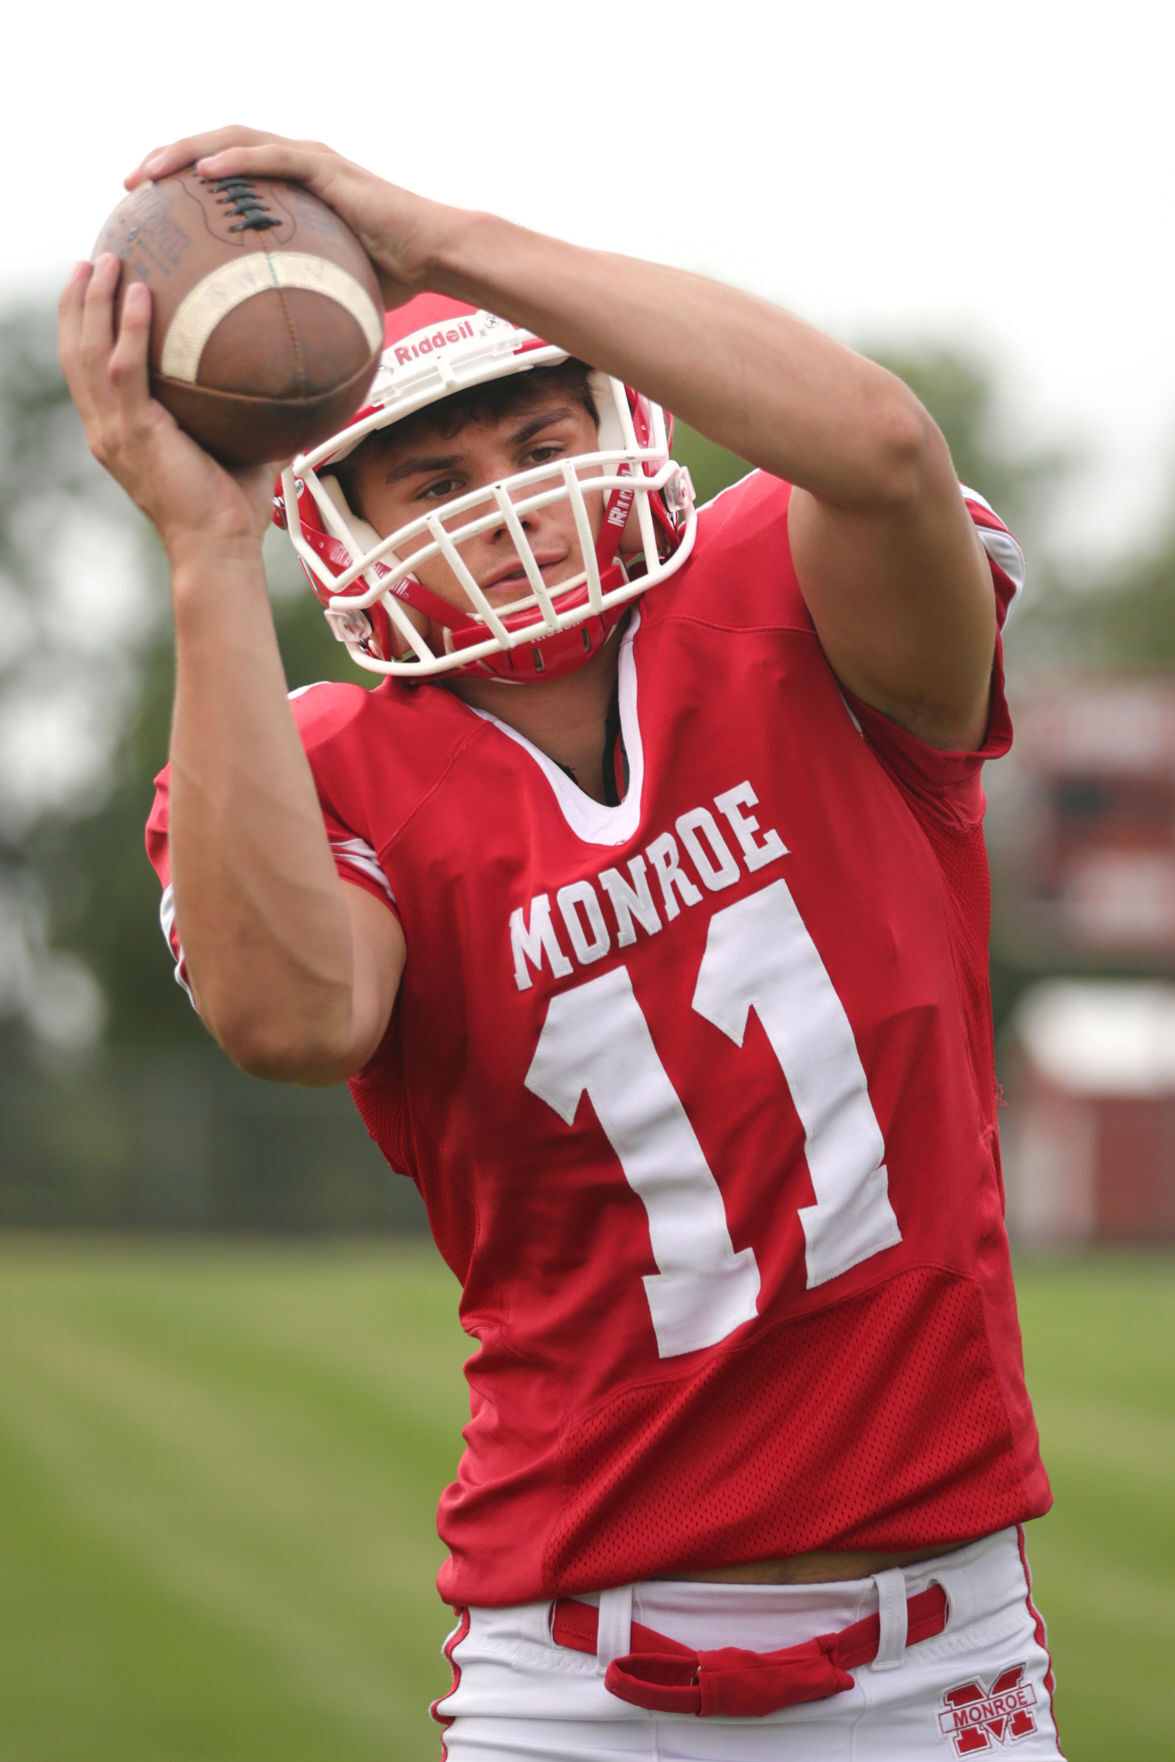 081021_badgerfbpreview_02kw-08112021153831